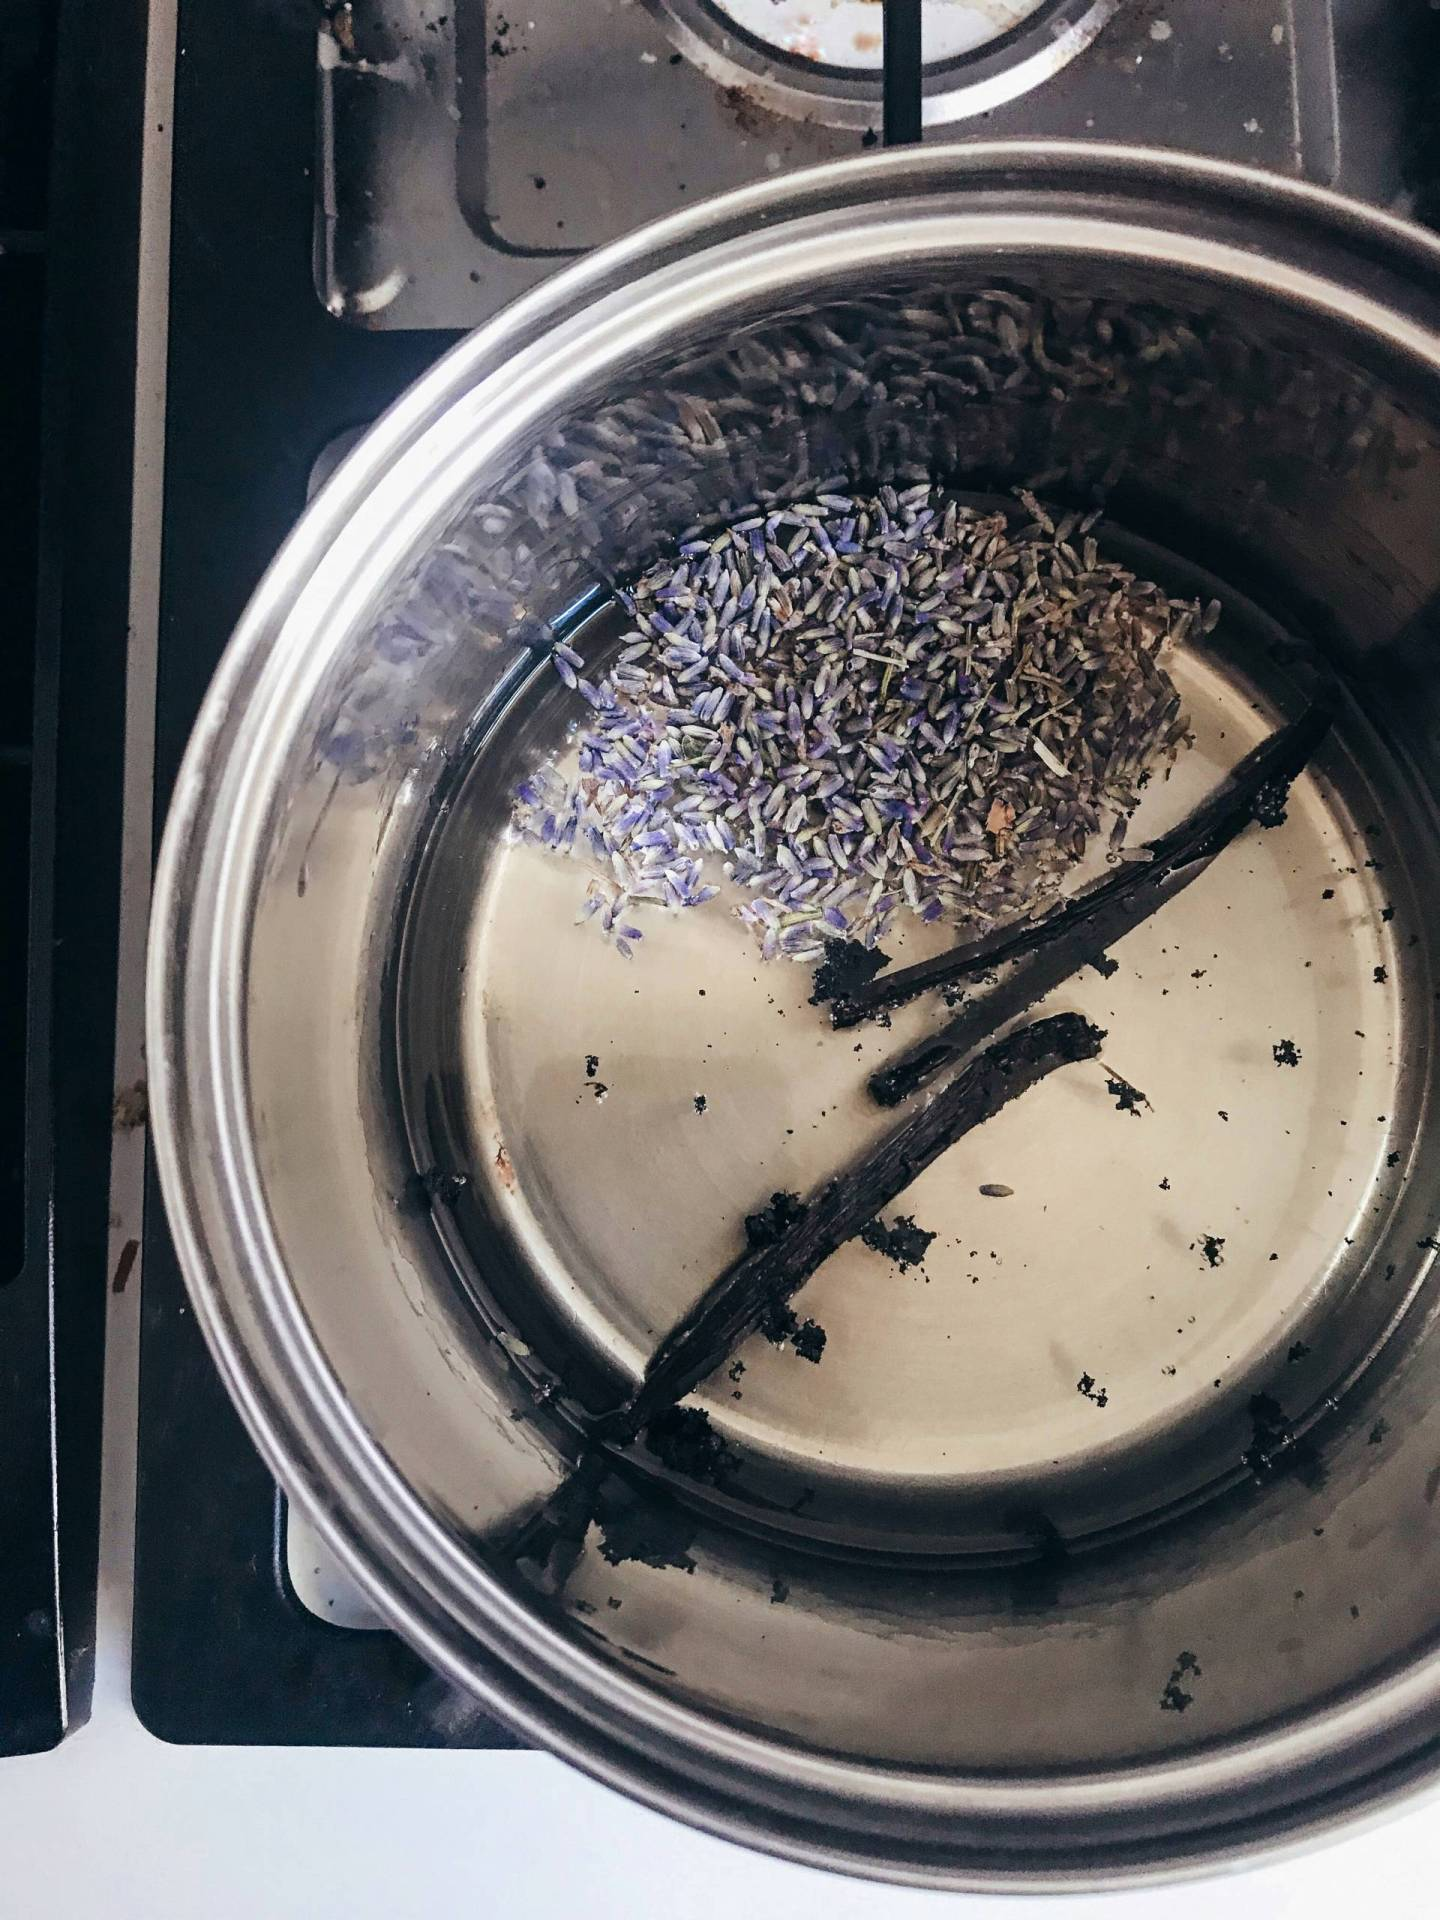 Nothing like baking up something fresh to keep busy during quarantine! This lavender vanilla syrup will jazz up your morning coffee and is seriously so simple all those coffee shops better watch out once they re-open!